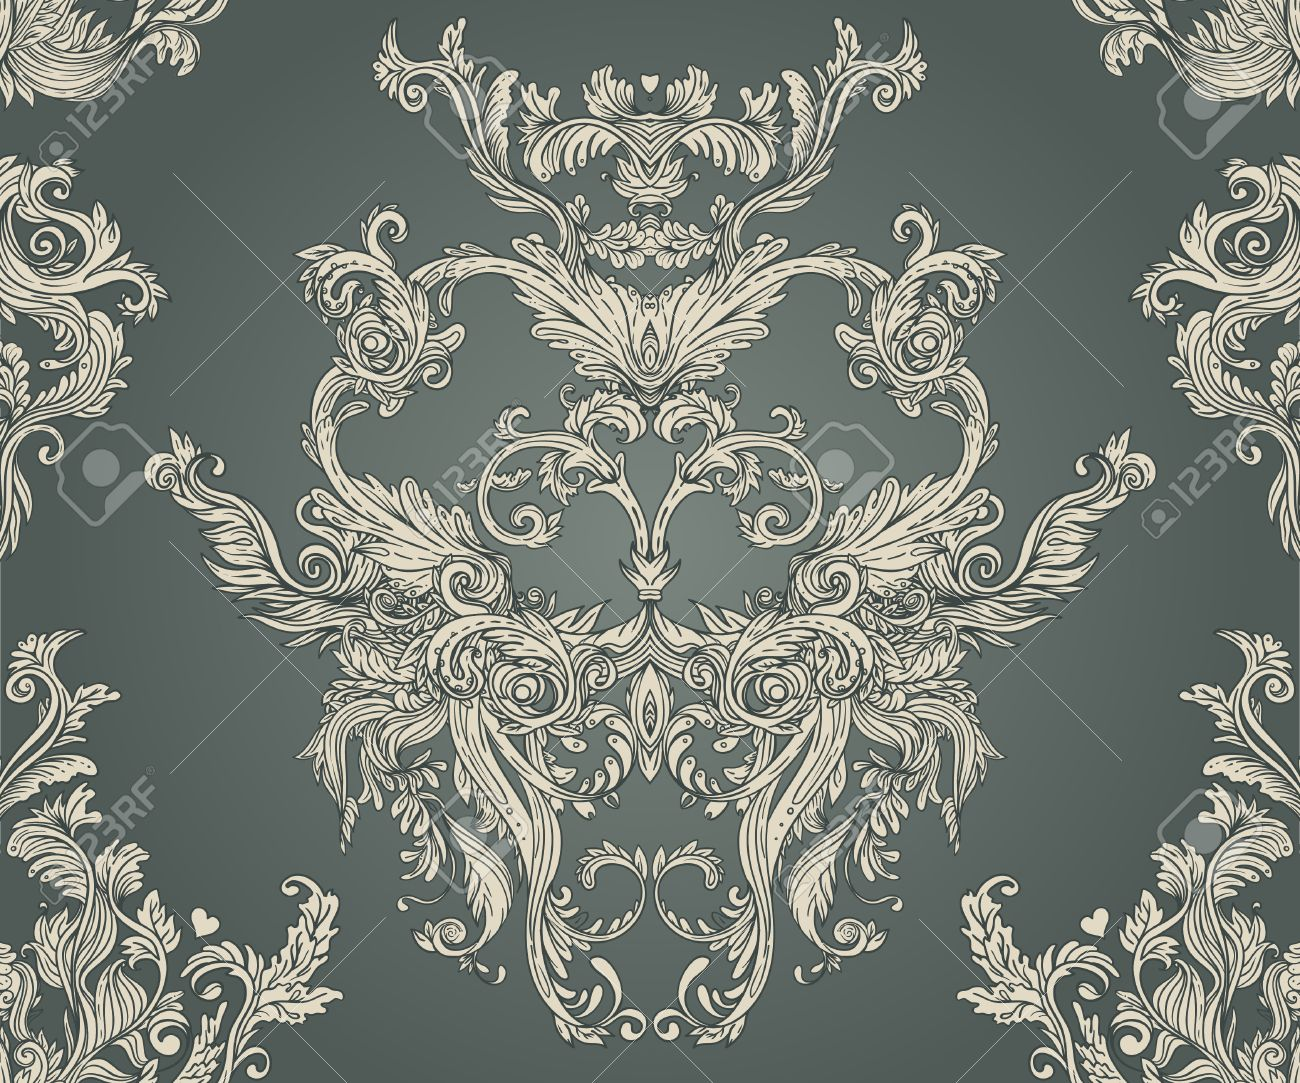 Vintage background ornate baroque pattern vector illustration stock vector 33592509